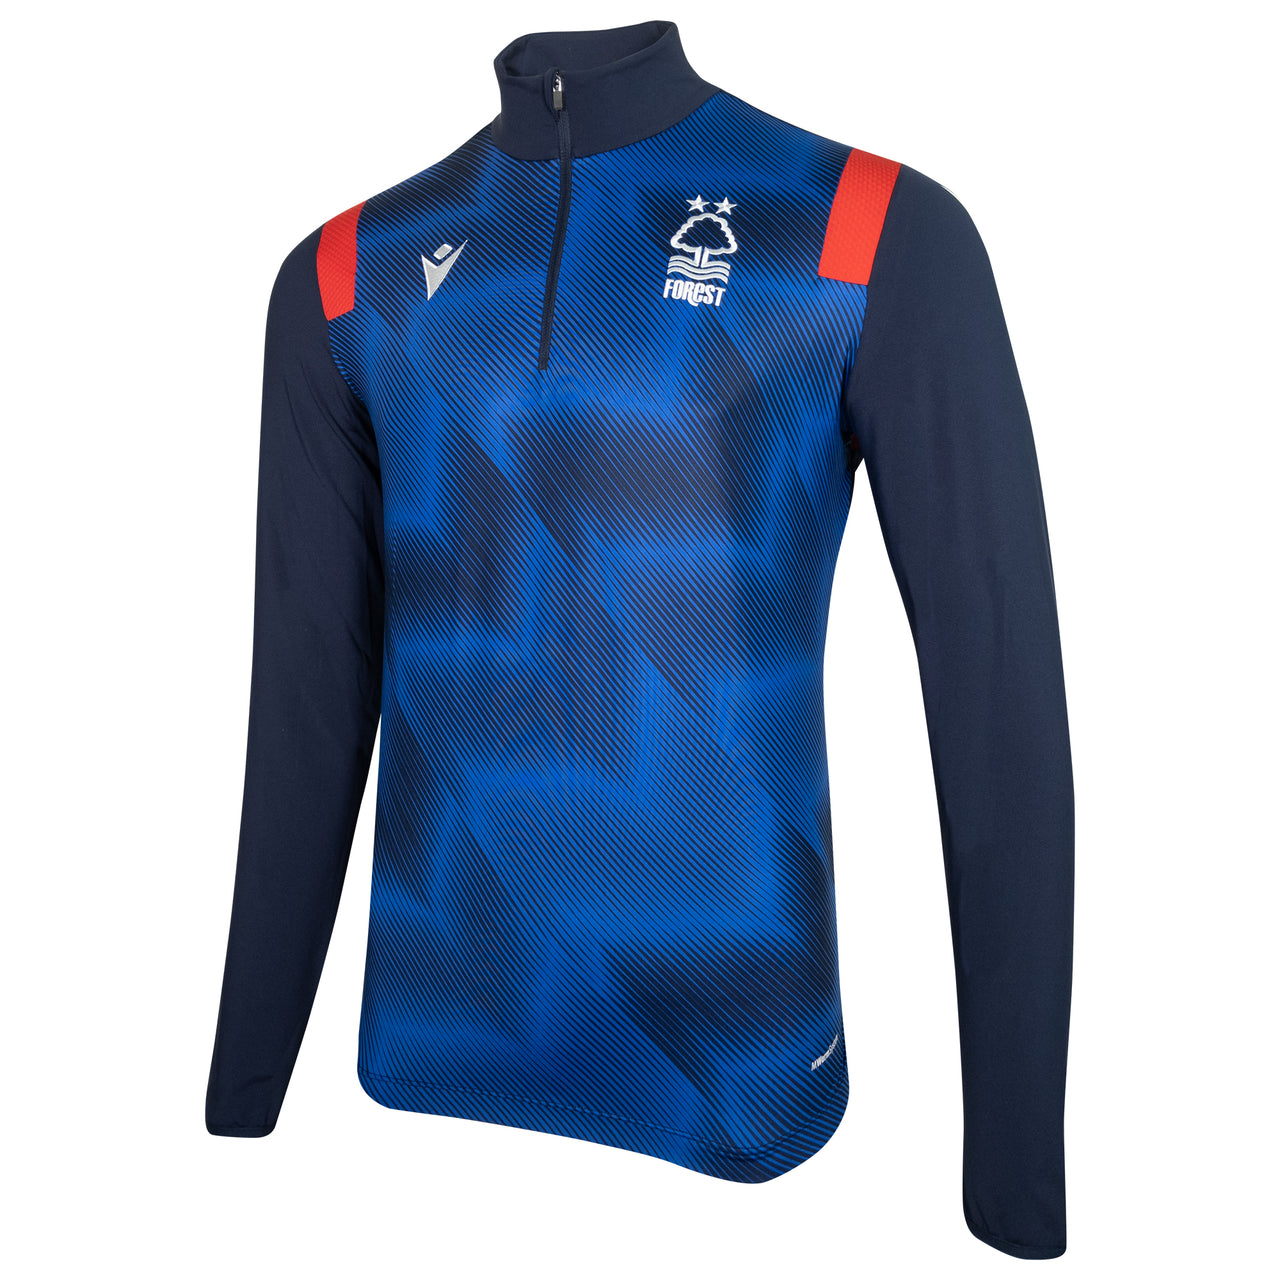 NFFC Junior Staff Training 1/4 Zip Top 2020/21